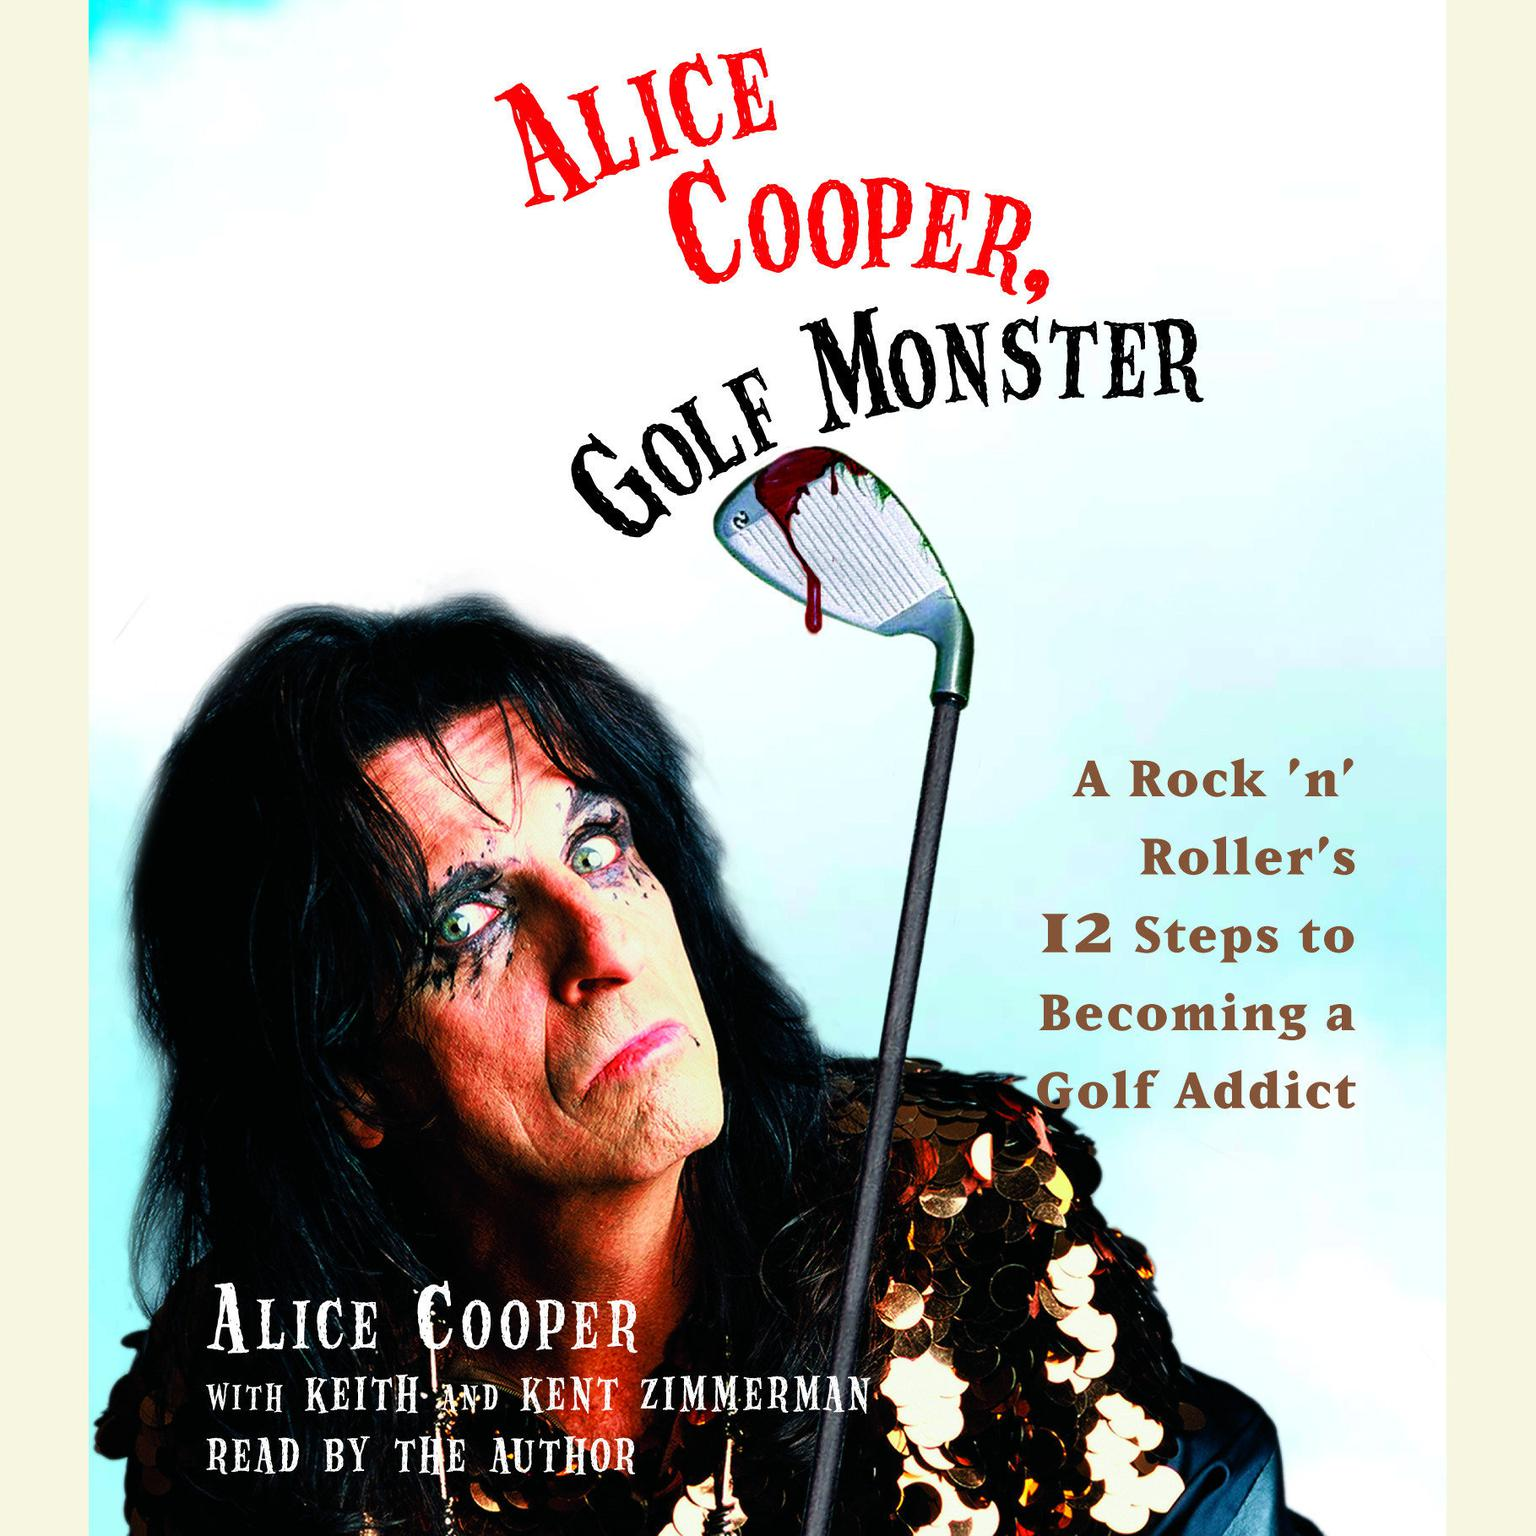 Printable Alice Cooper, Golf Monster: A Rock 'n' Roller's Life and 12 Steps to Becoming a Golf Addict Audiobook Cover Art